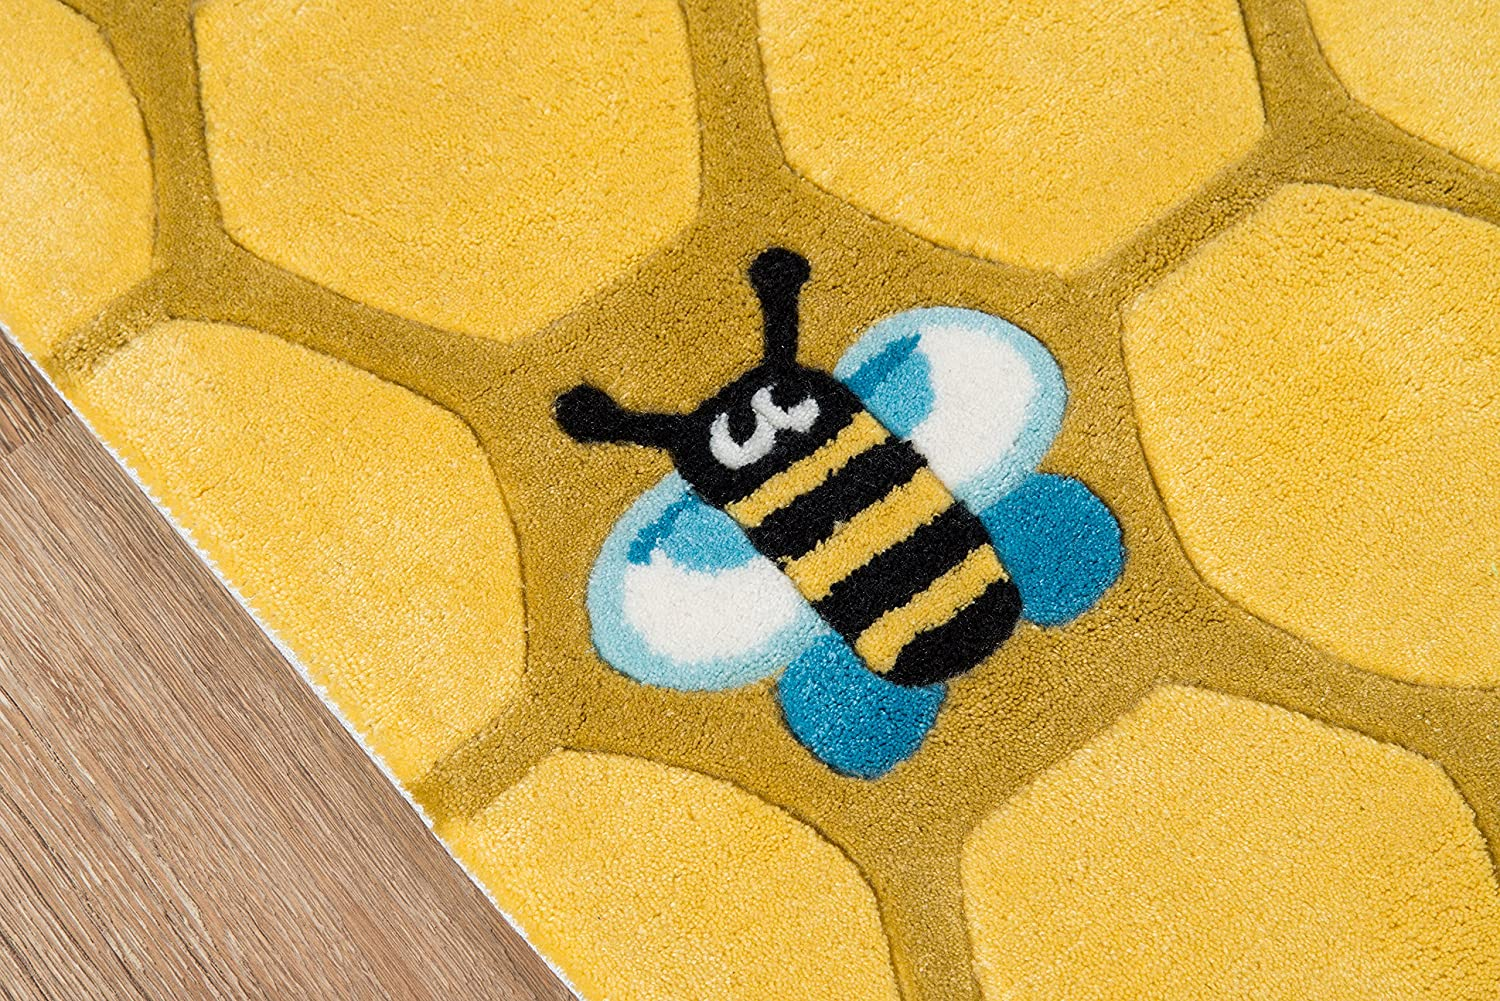 Honeycomb Yellow 3/' x 5/' Inc DROPSHIP Kids Themed Hand Carved /& Tufted Area Rug Momeni Rugs LMOJULMJ15HCG3050 Lil Mo Whimsy Collection 3 x 5